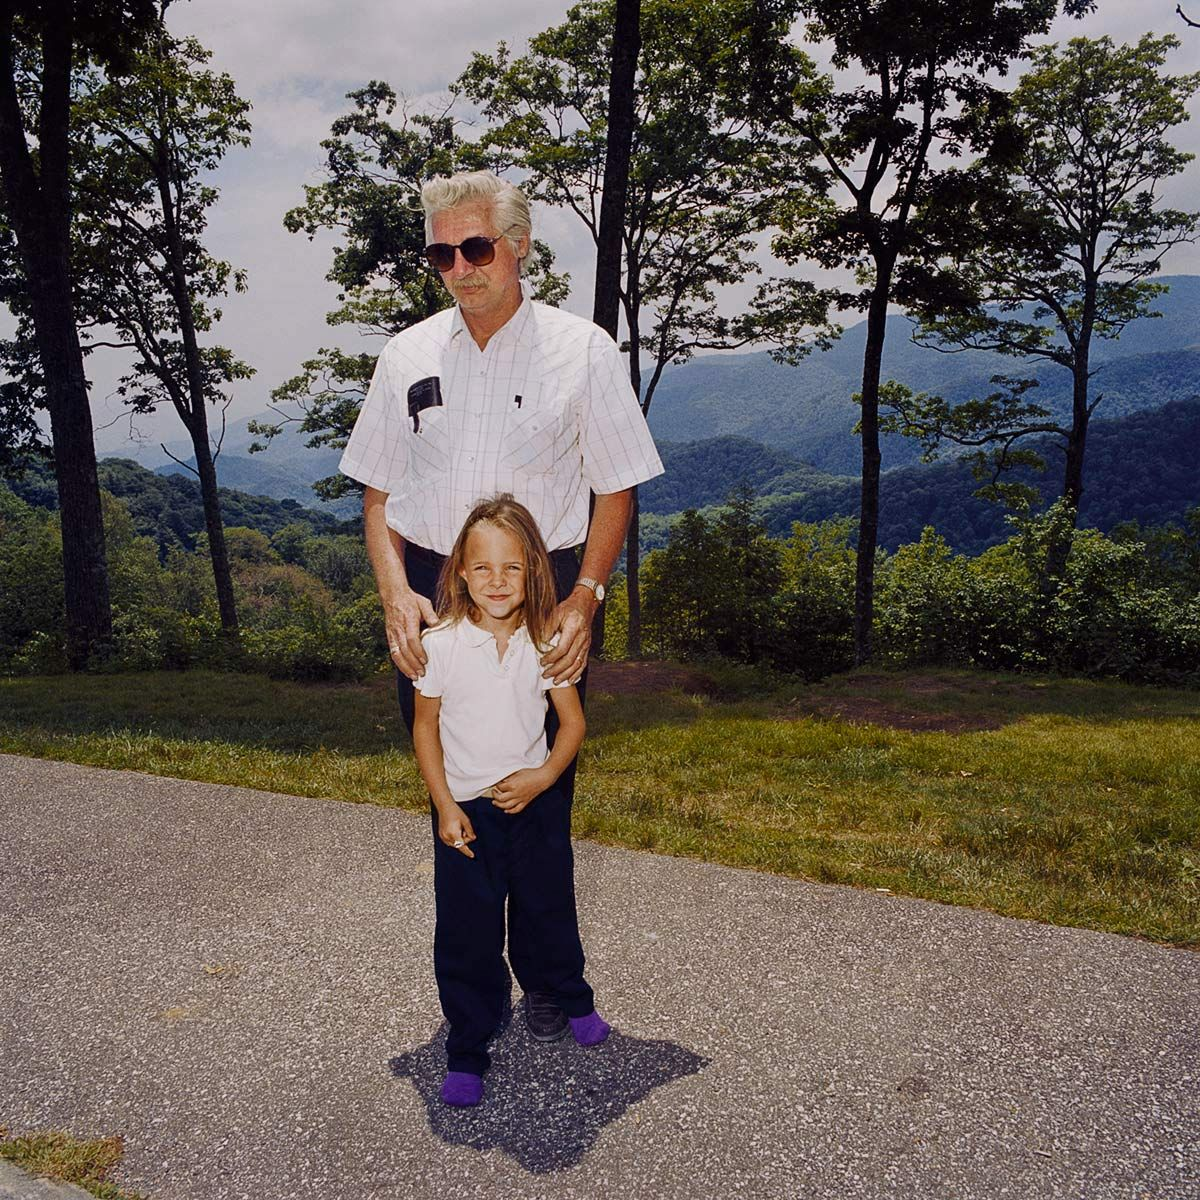 Grandfather and granddaugher, Great Smoky Mountains, NC 1999